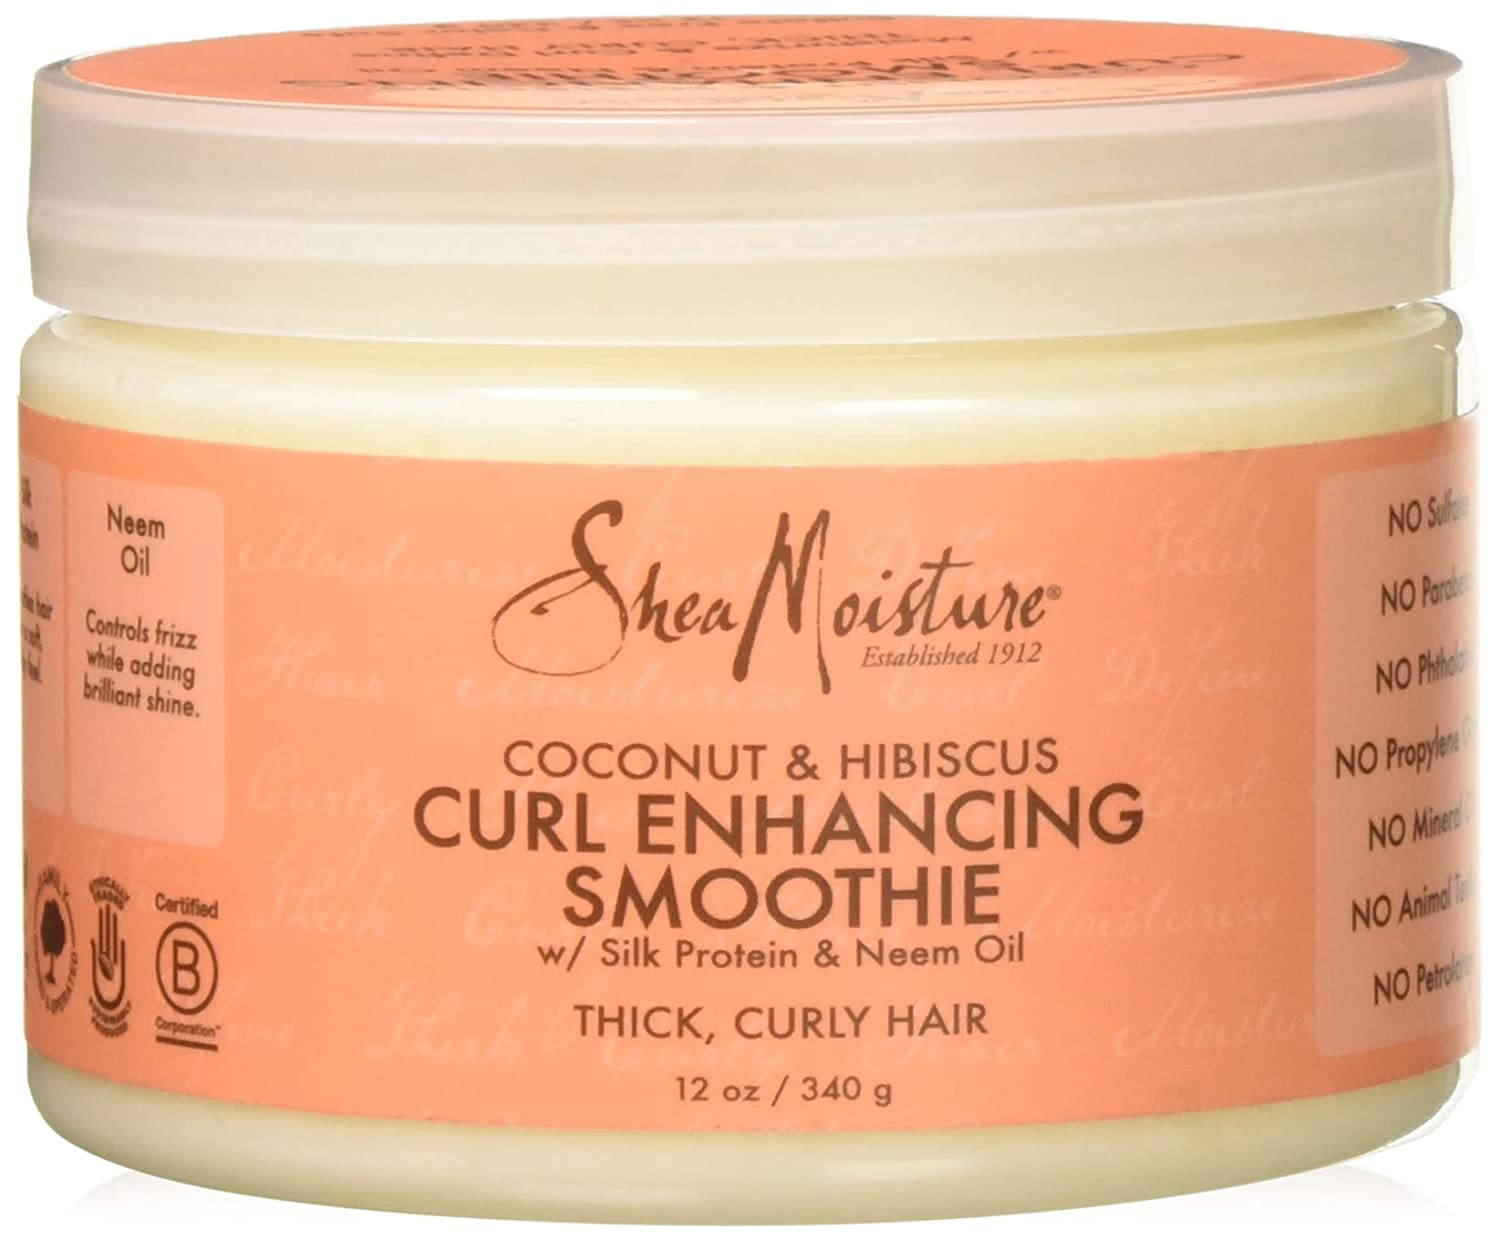 SheaMoisture Coconut & Hibiscus Curl Enhancing Smoothie, 12 Ounce Shea Moisture NA